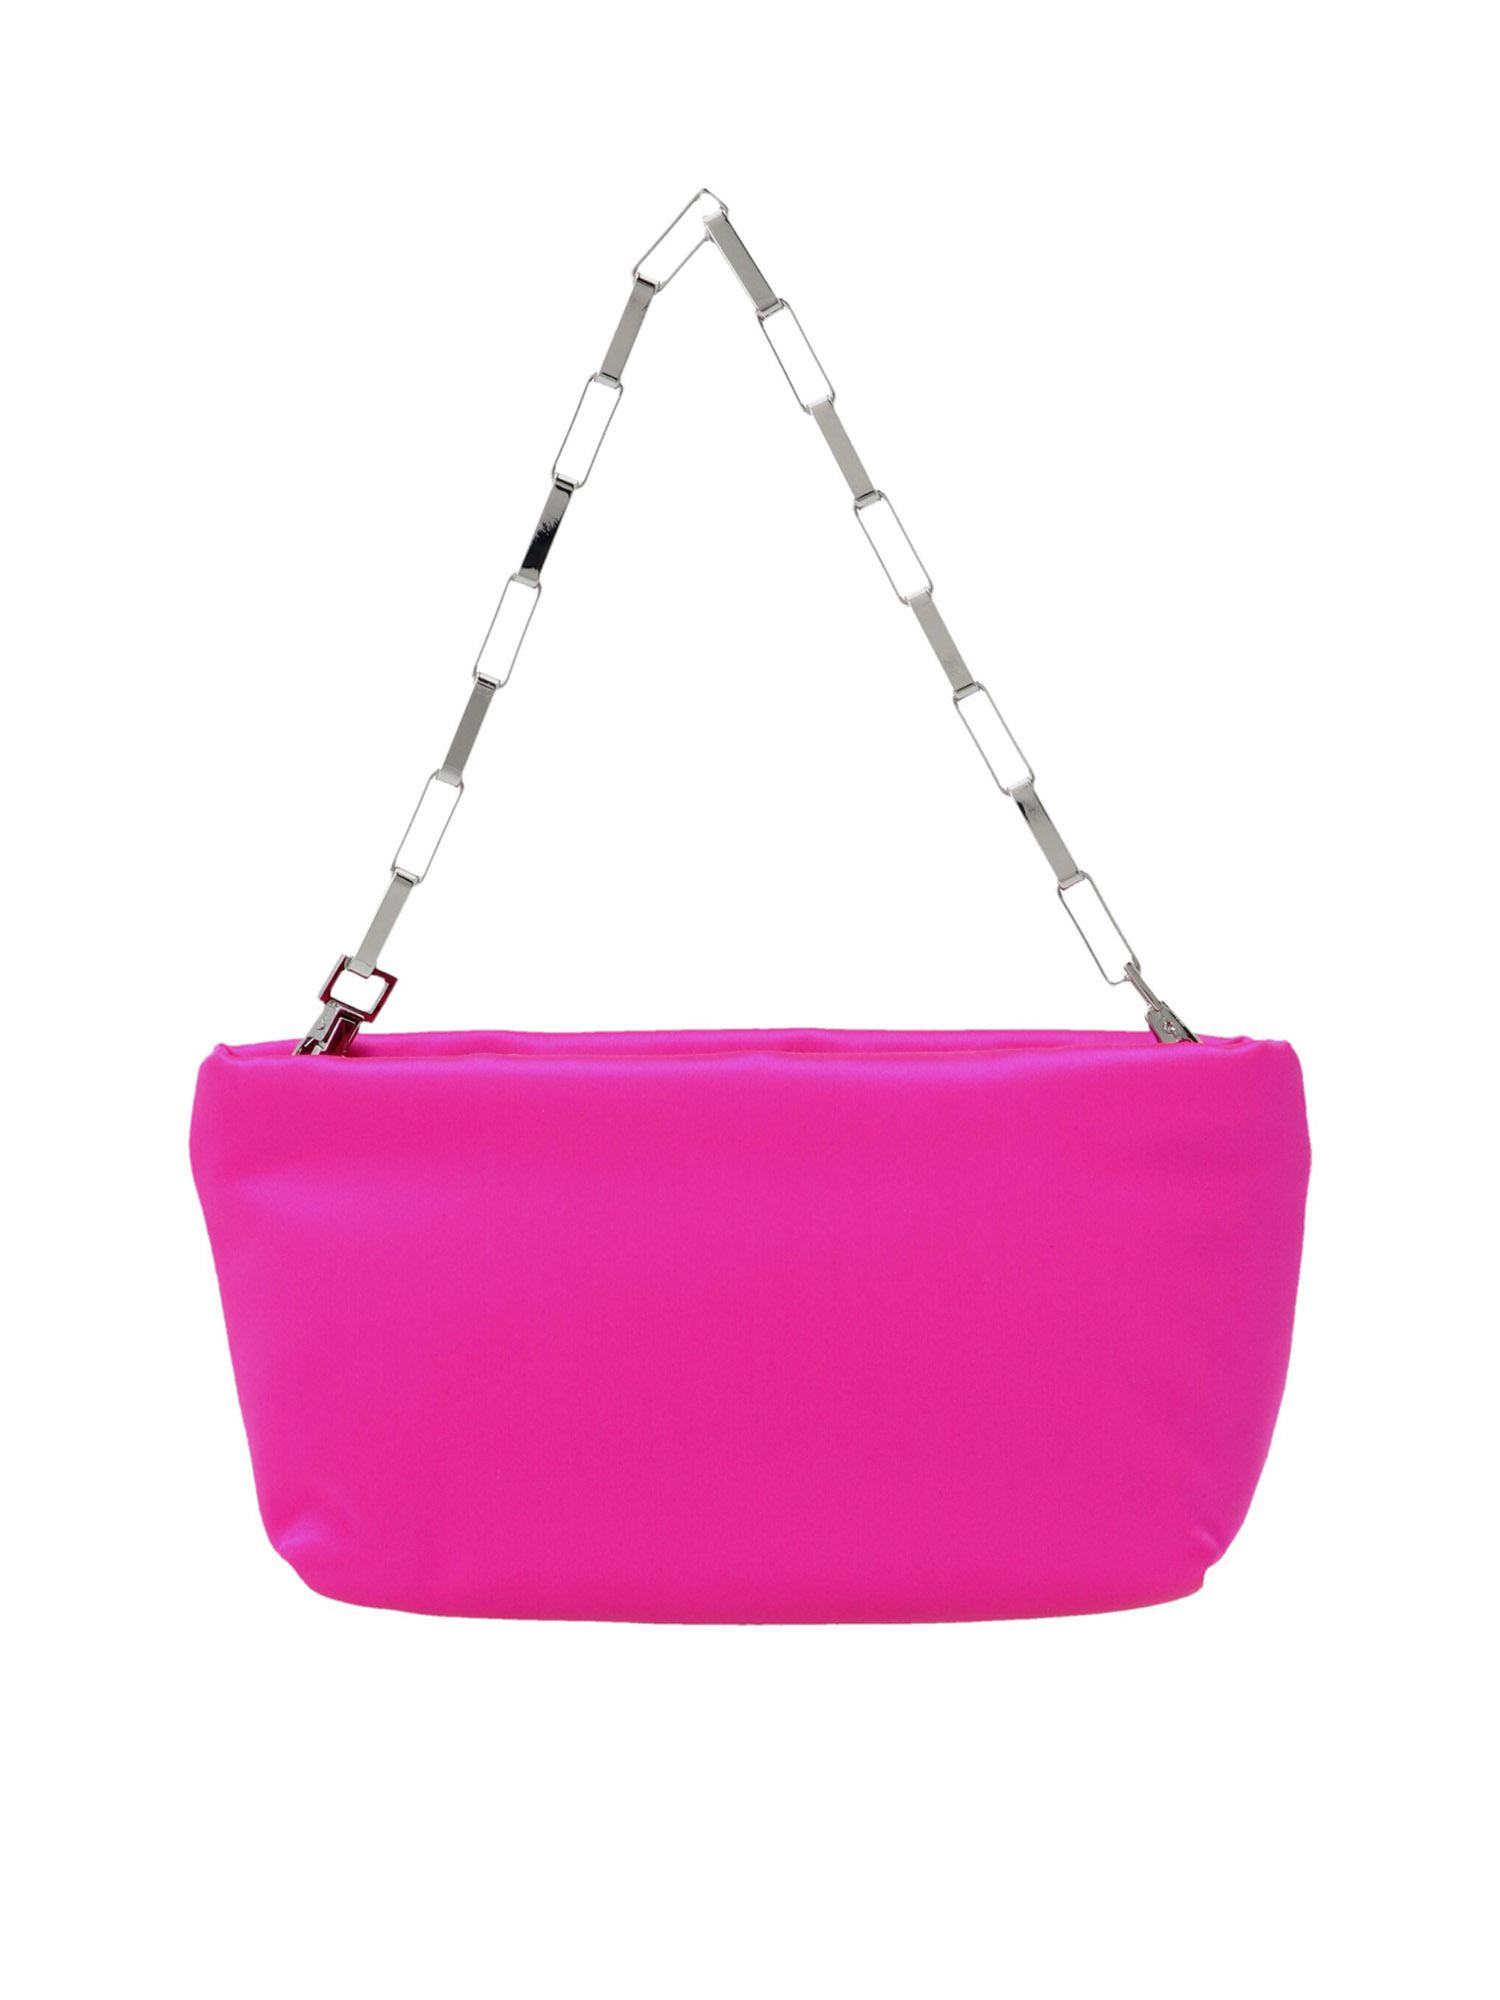 Attico WINONA MINI BAG IN FUCHSIA